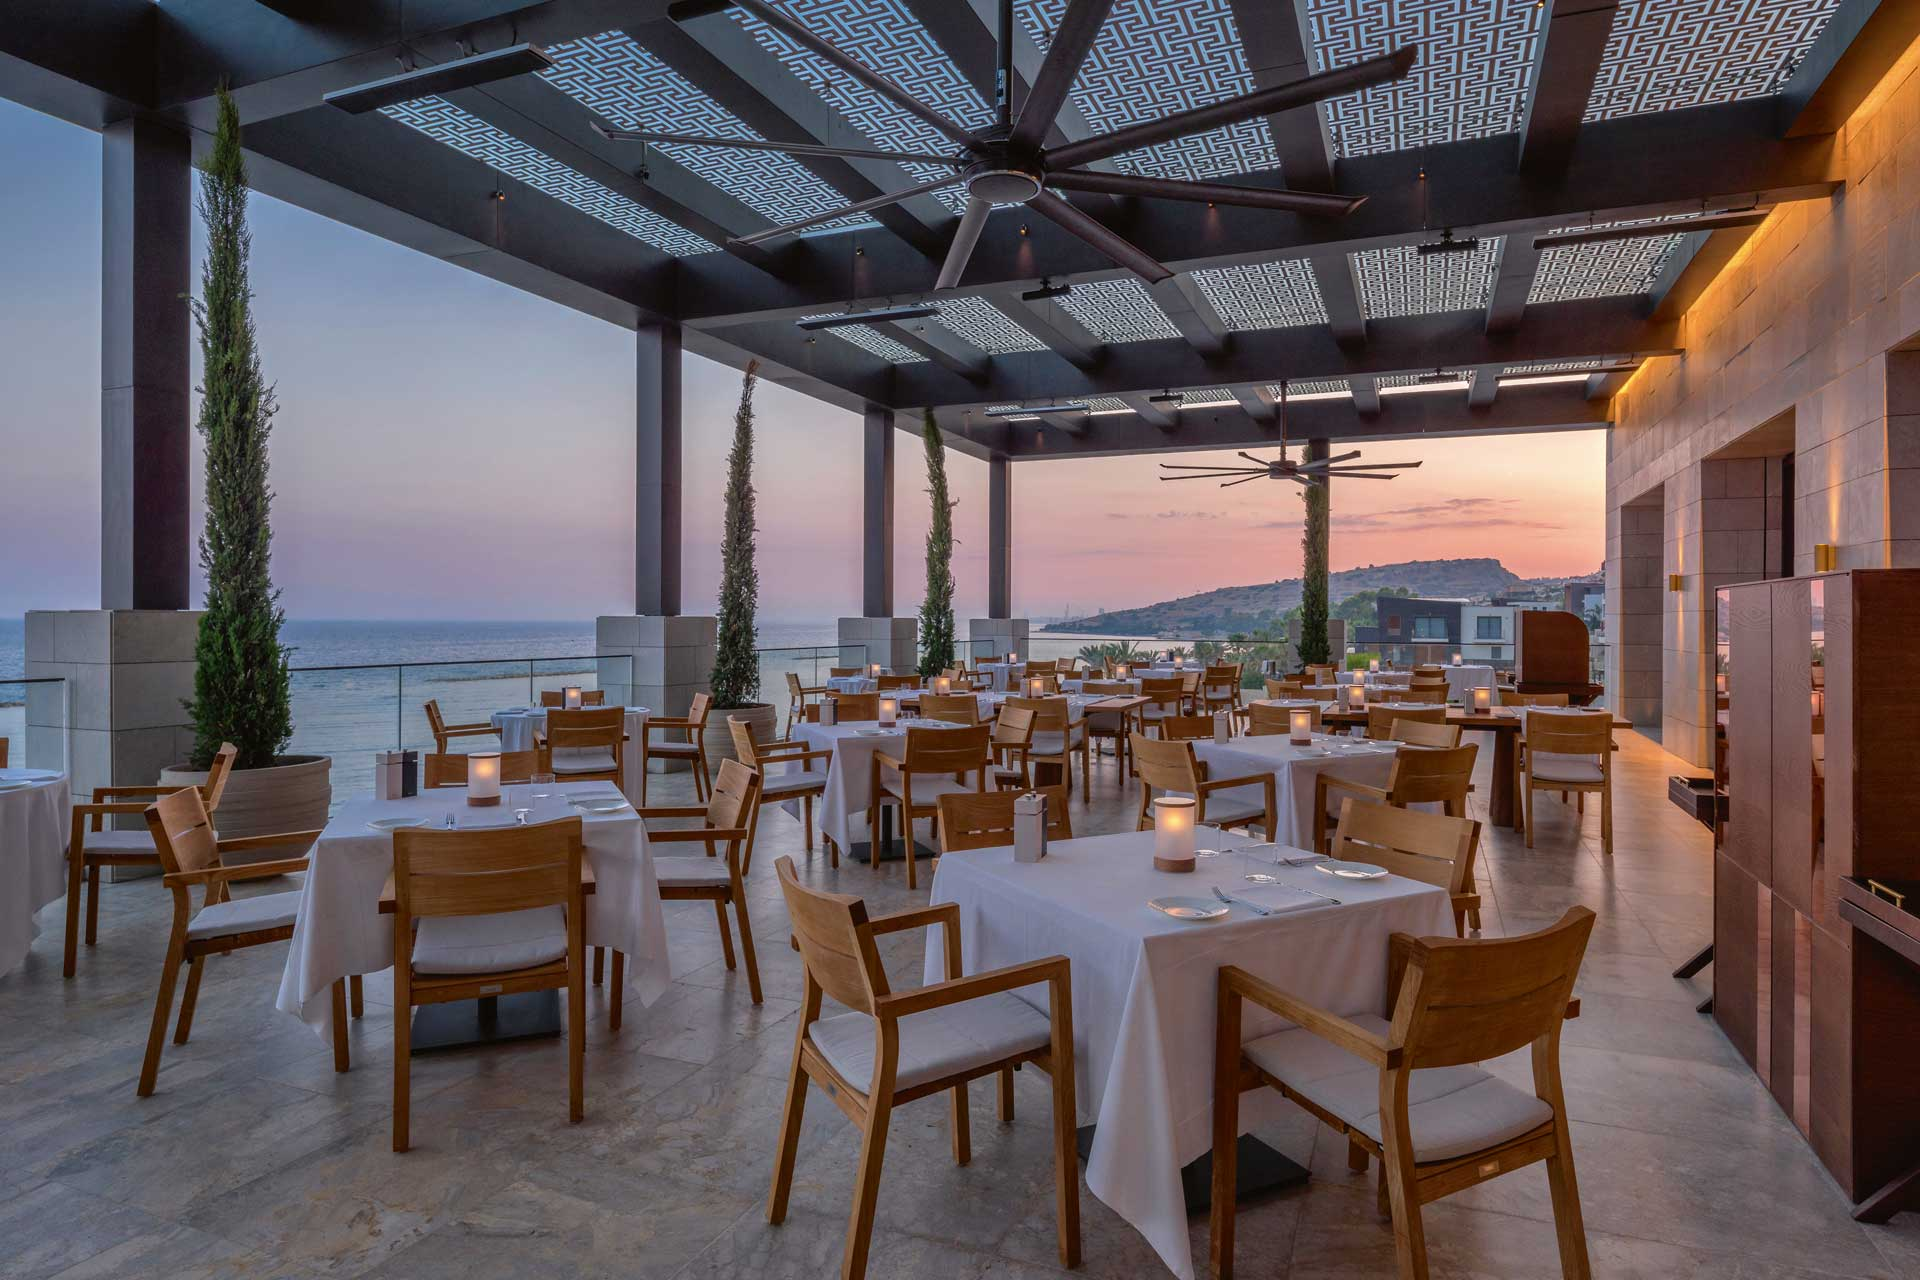 The terrace at Ristorante Locatelli overlooks the Mediterranean and Limassol